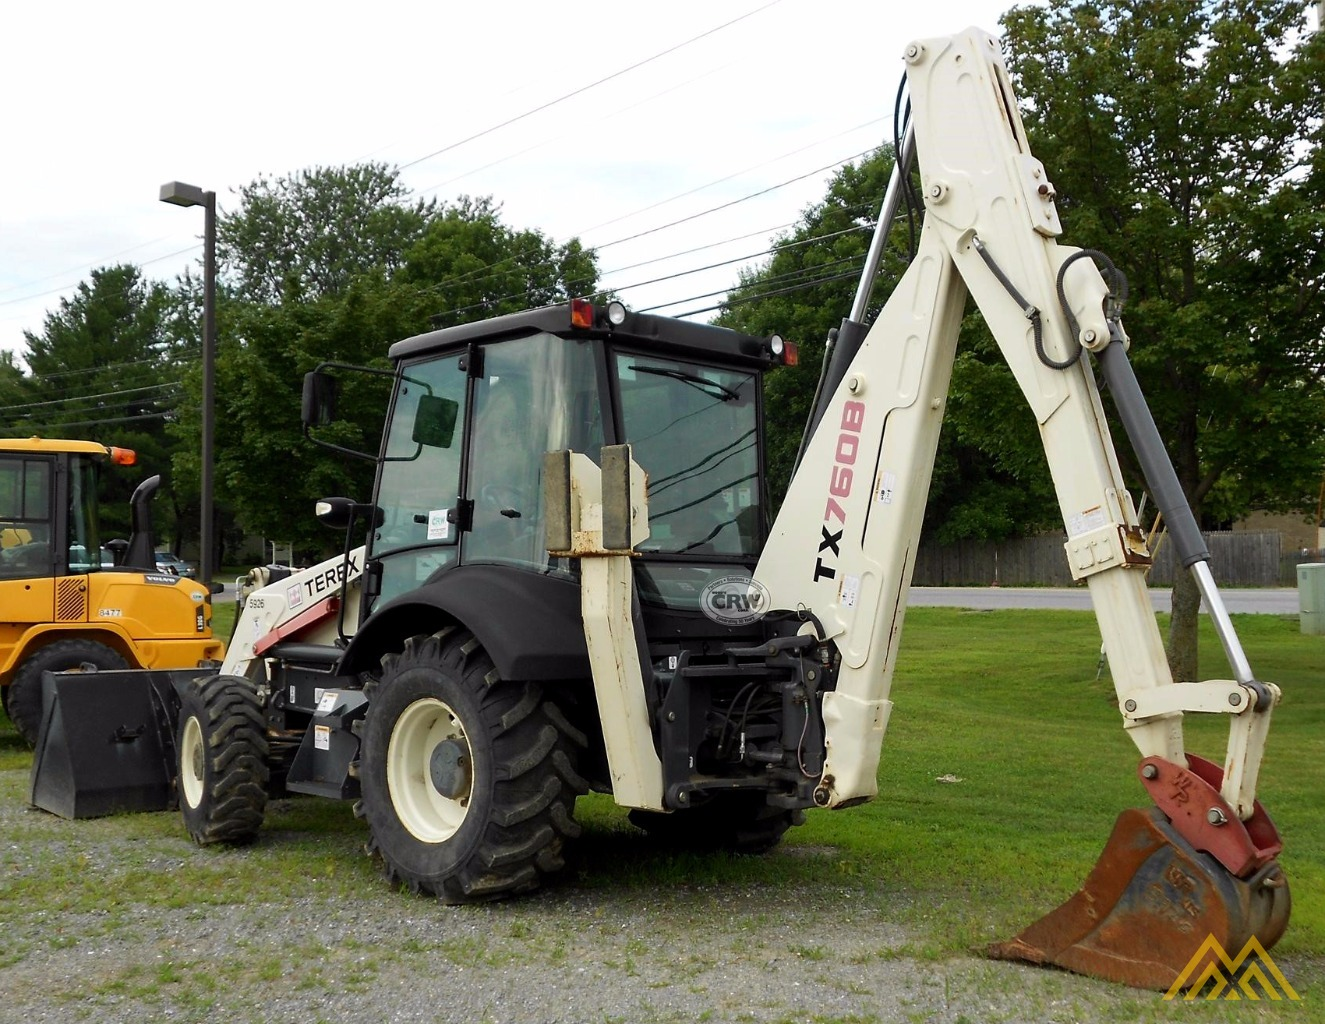 Low Hr!! 2010 Terex TX760B Backhoe Loader 2